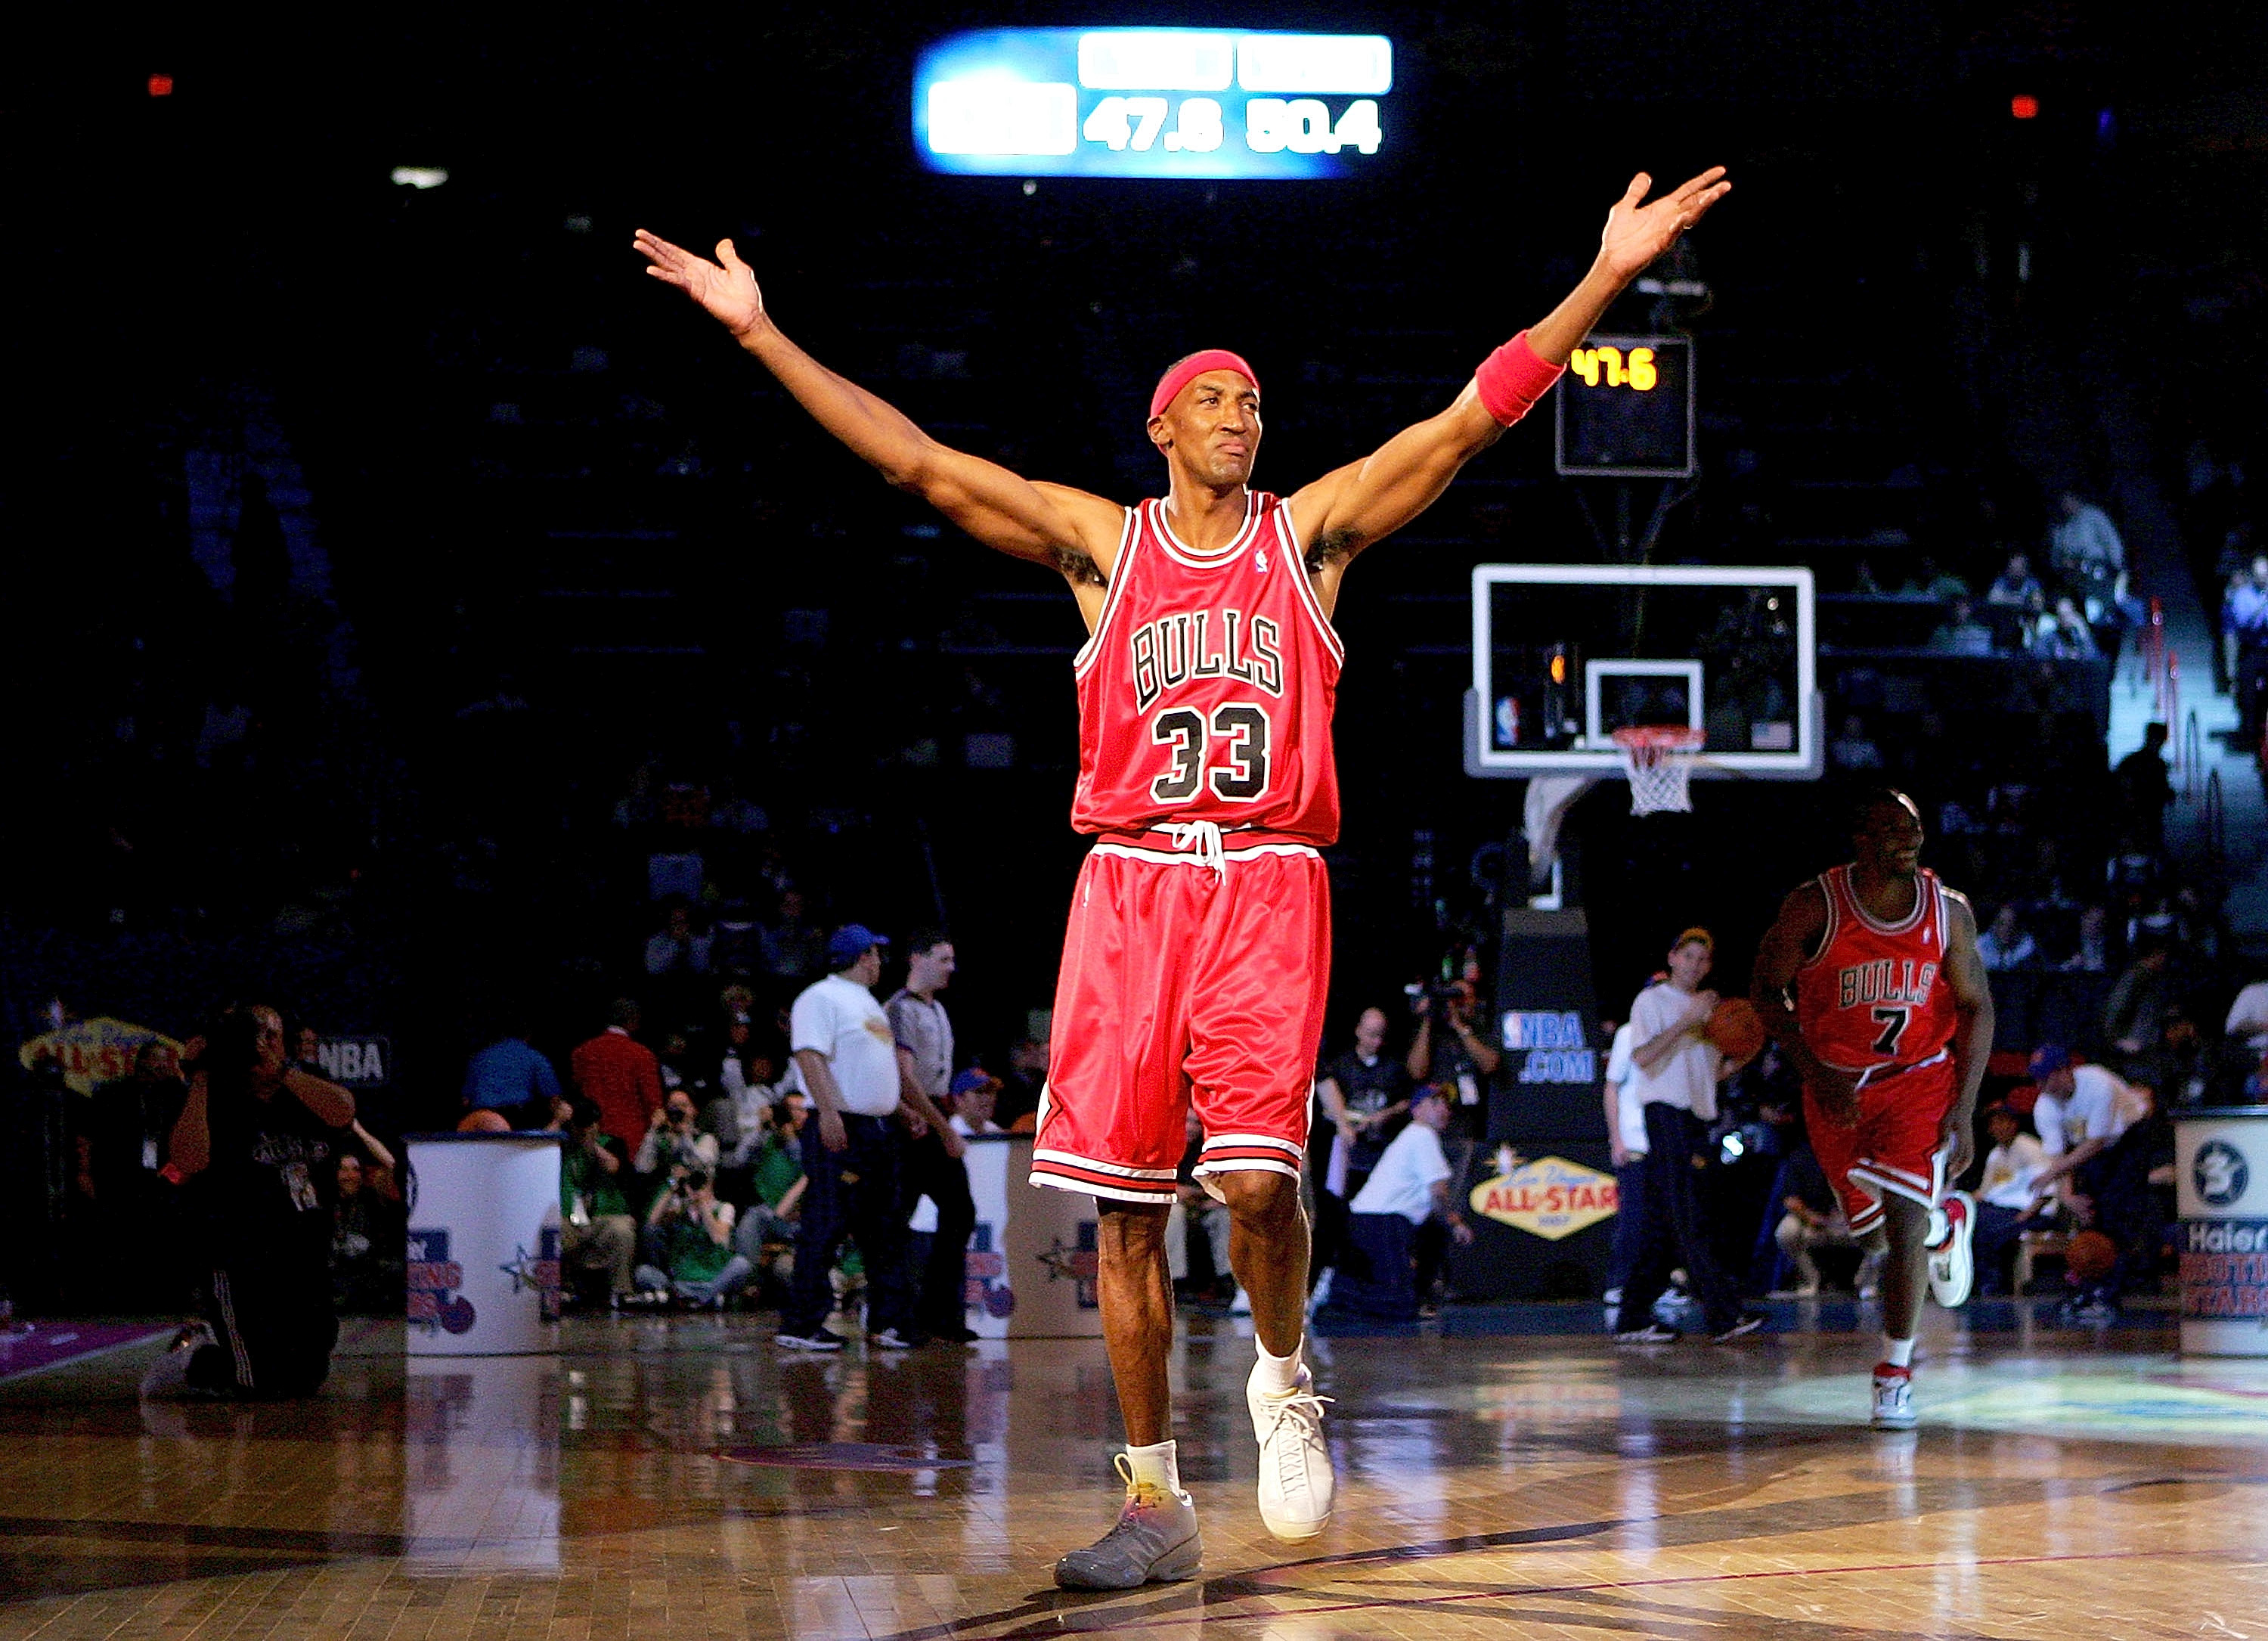 LAS VEGAS - FEBRUARY 17:  Scottie Pippen of the Chicago team celebrates after sinking a half-court shot in the Haier Shooting Stars Competition during NBA All-Star Weekend on February 17, 2007 at Thomas & Mack Center in Las Vegas, Nevada.  NOTE TO USER: U